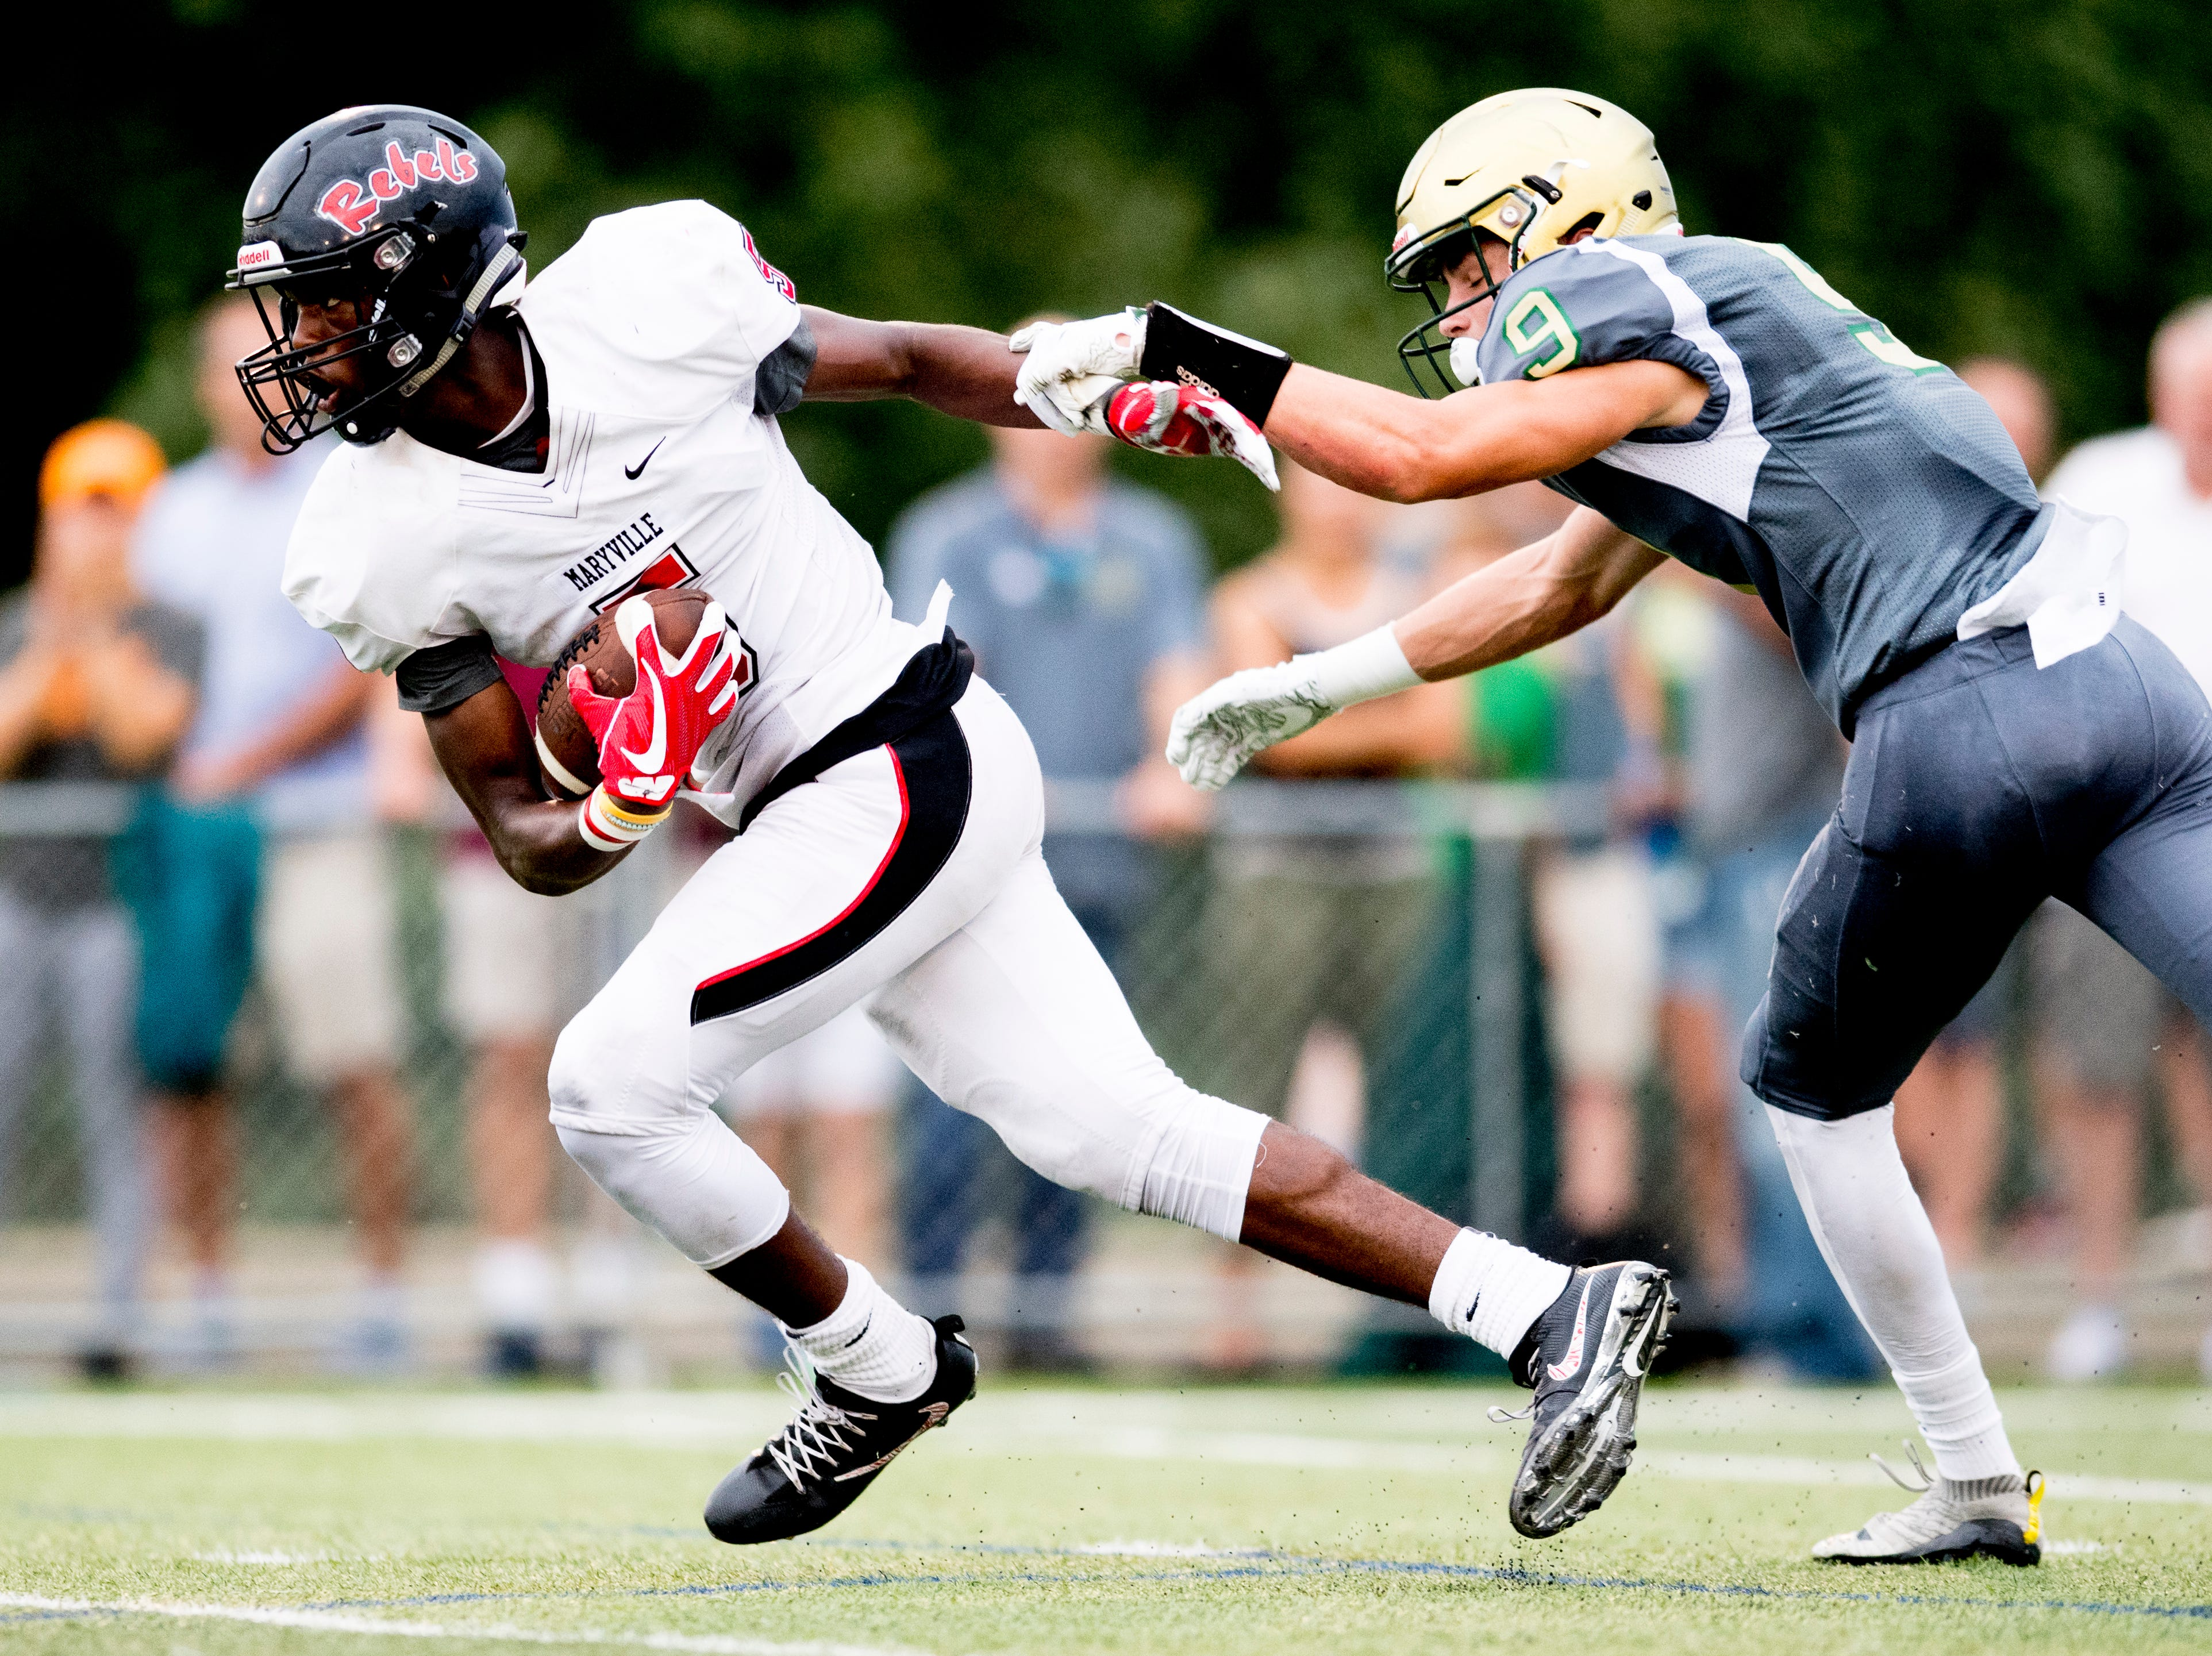 Maryville's DaVon Kimble (5) runs past Catholic's Adam Jones (9) during a football game between Maryville and Catholic at Catholic High School in Knoxville, Tennessee on Friday, August 17, 2018.